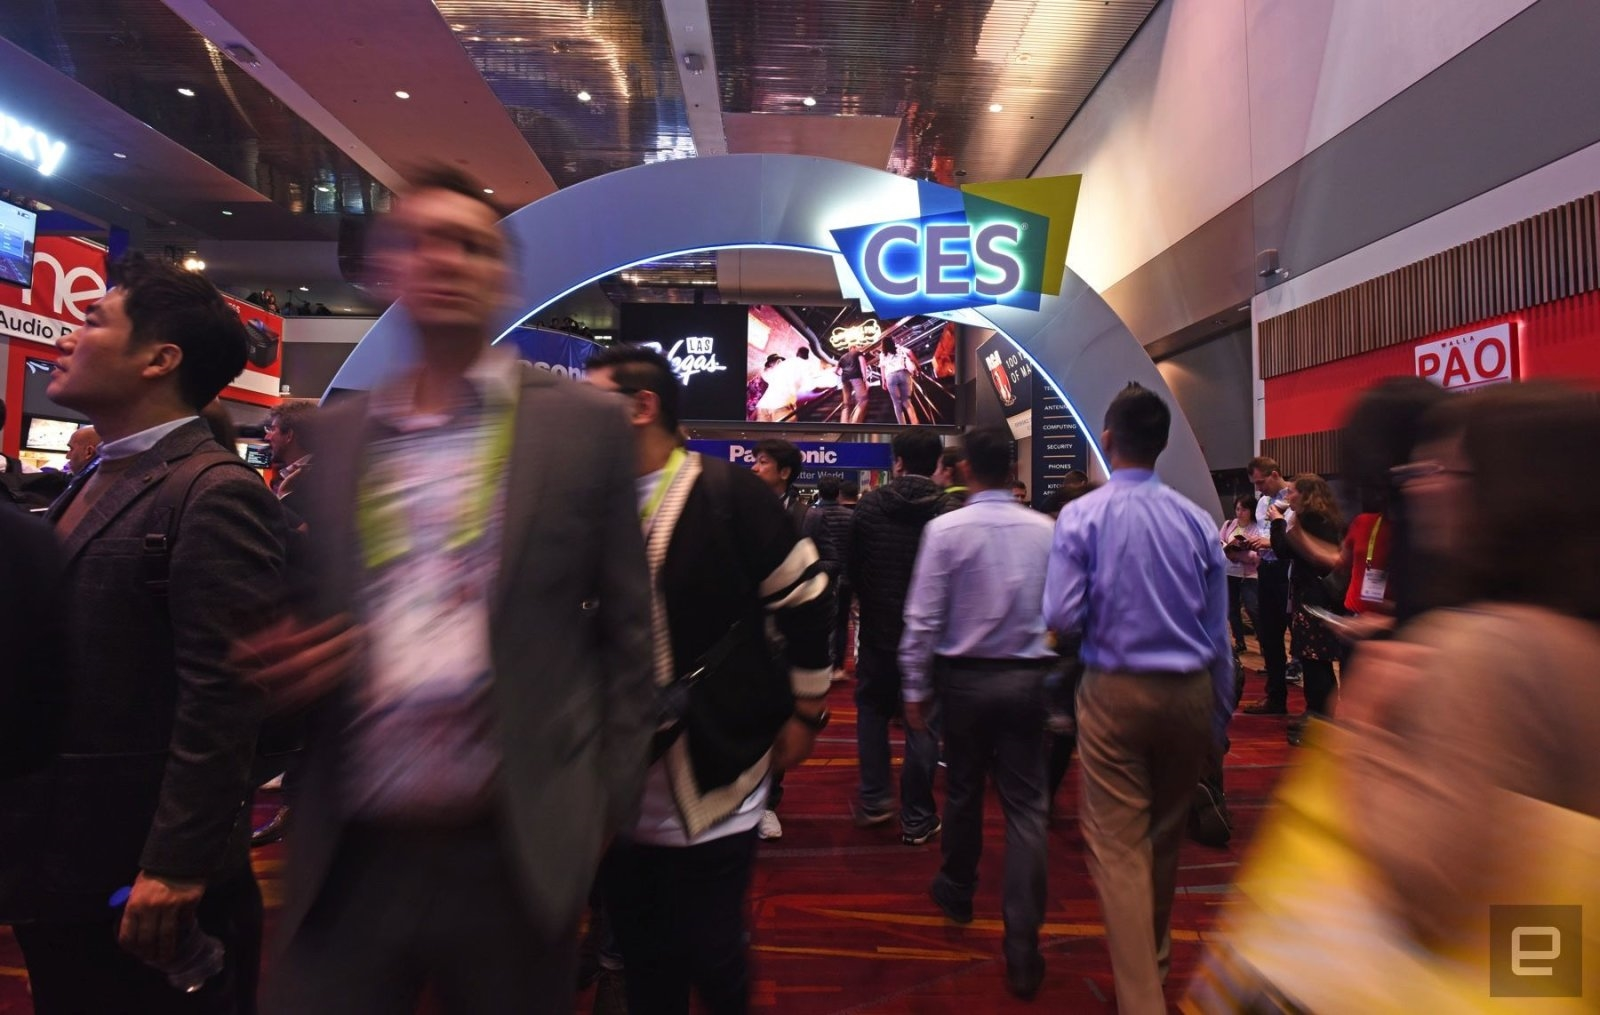 All the stuff that happened while we were at CES | DeviceDaily.com